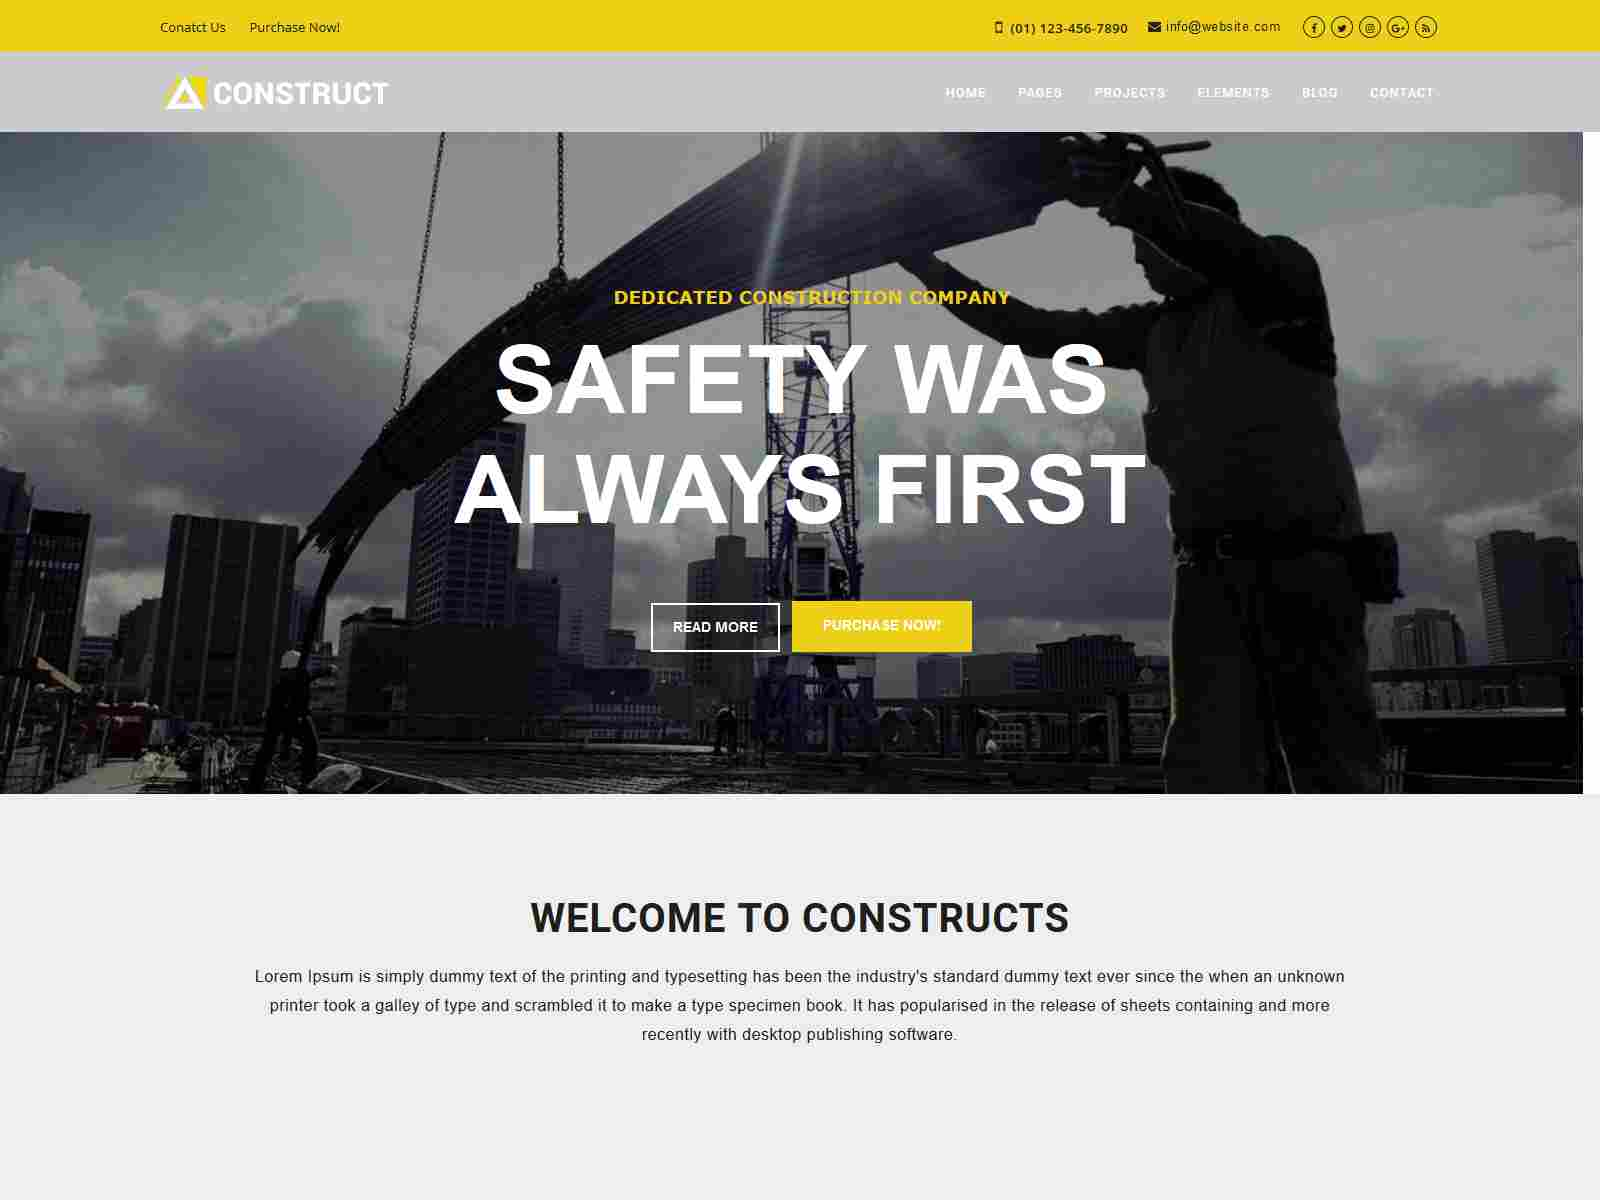 Construct - The Building Company Drupal 8.8 Theme